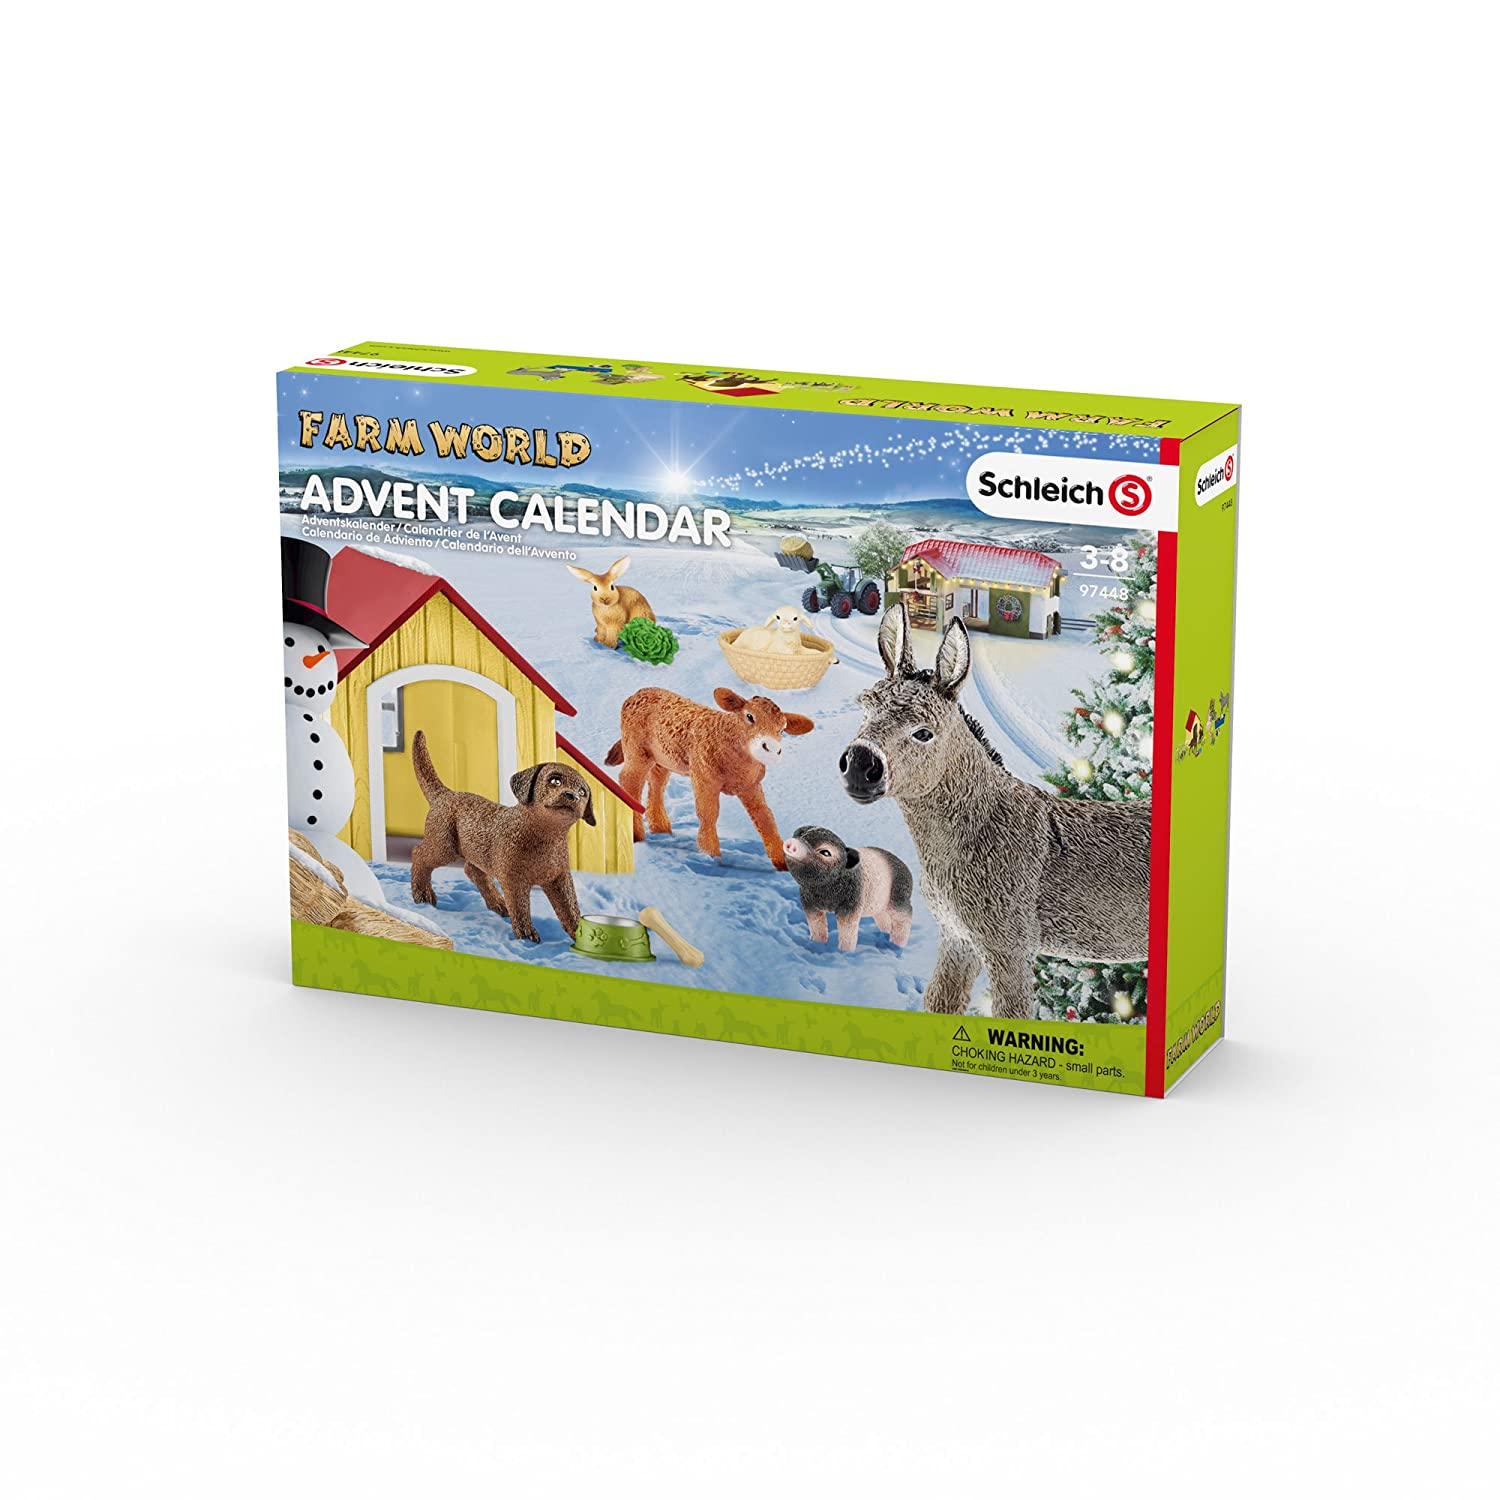 Schleich 97448 - Adventskalender Farm World 2017